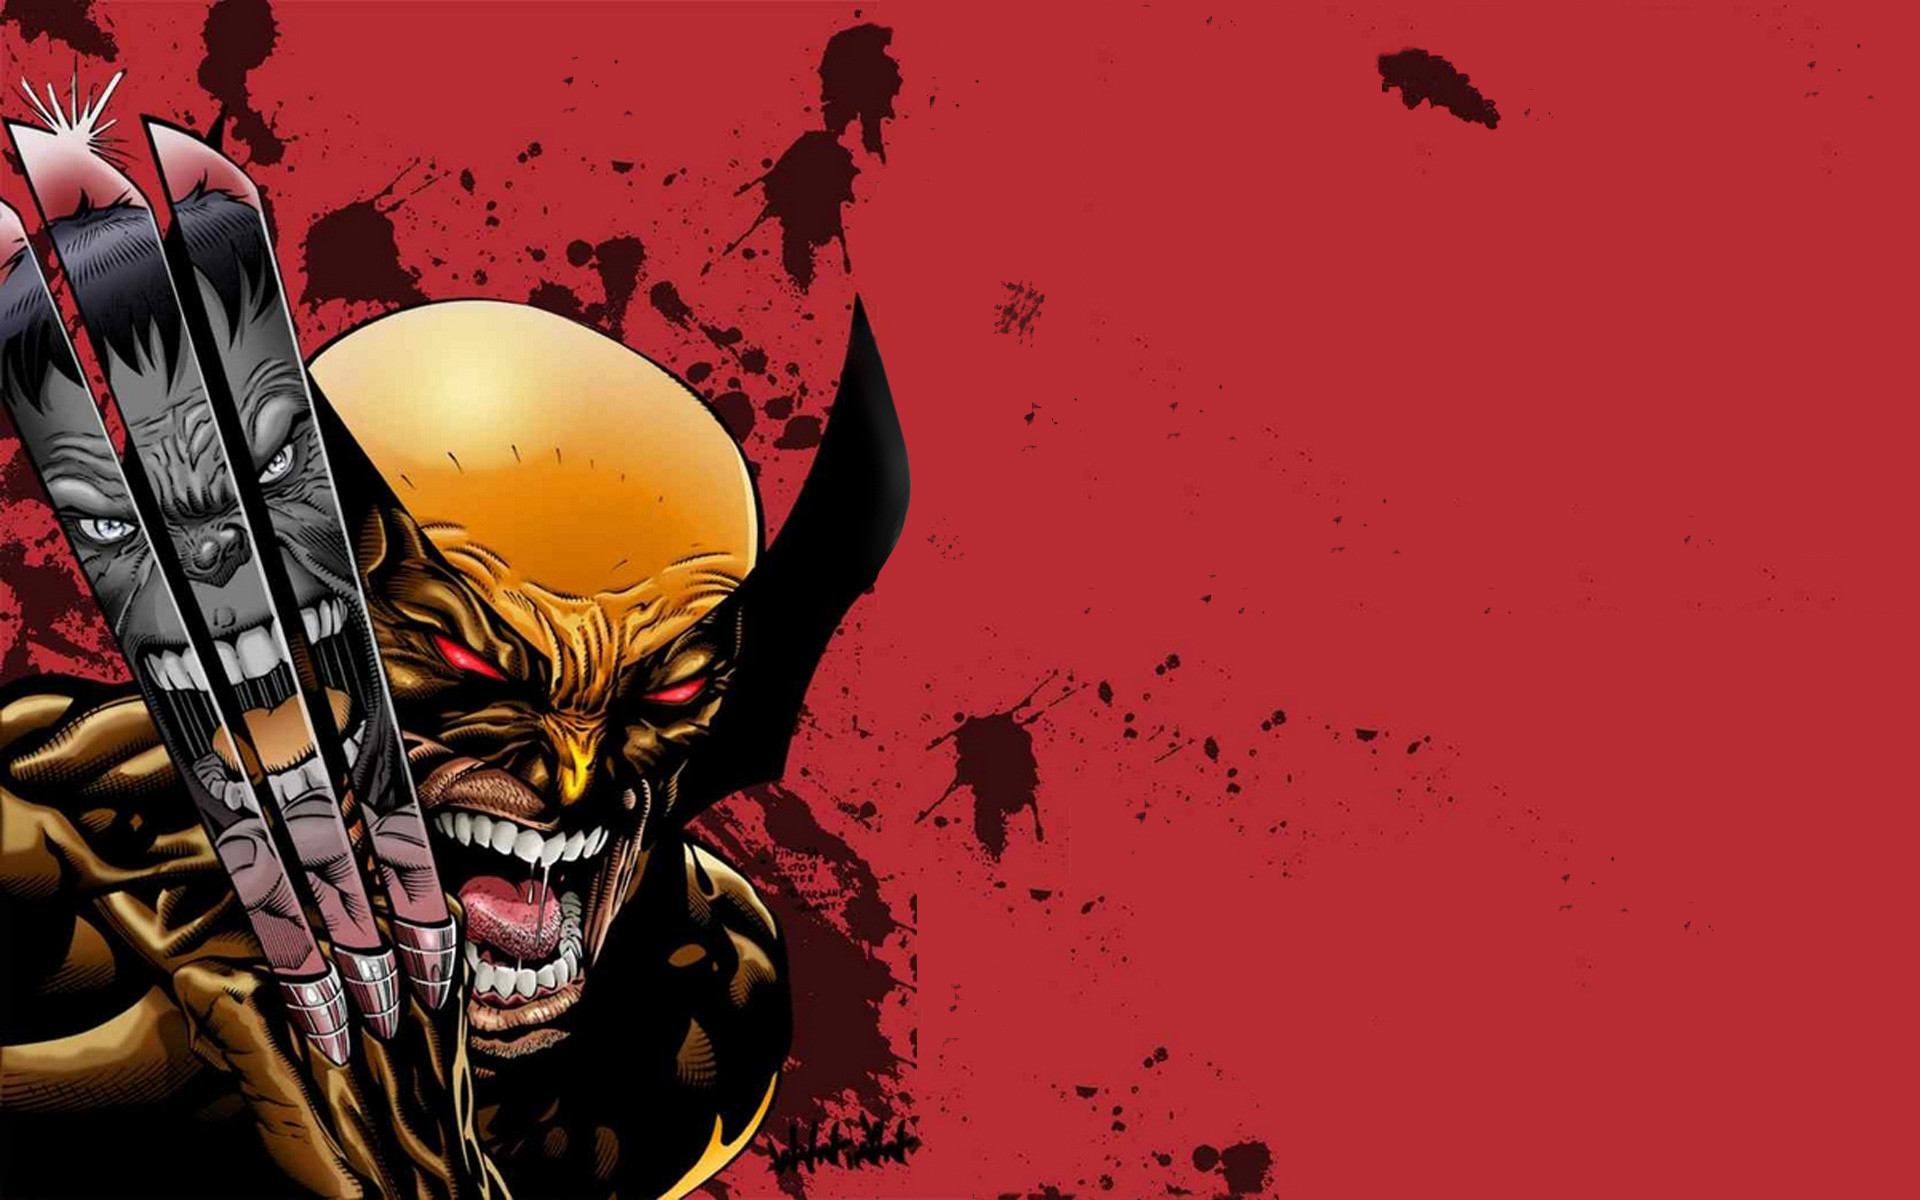 1920x1200 5 Ultimate Wolverine Vs. Hulk HD Wallpapers | Backgrounds - Wallpaper Abyss